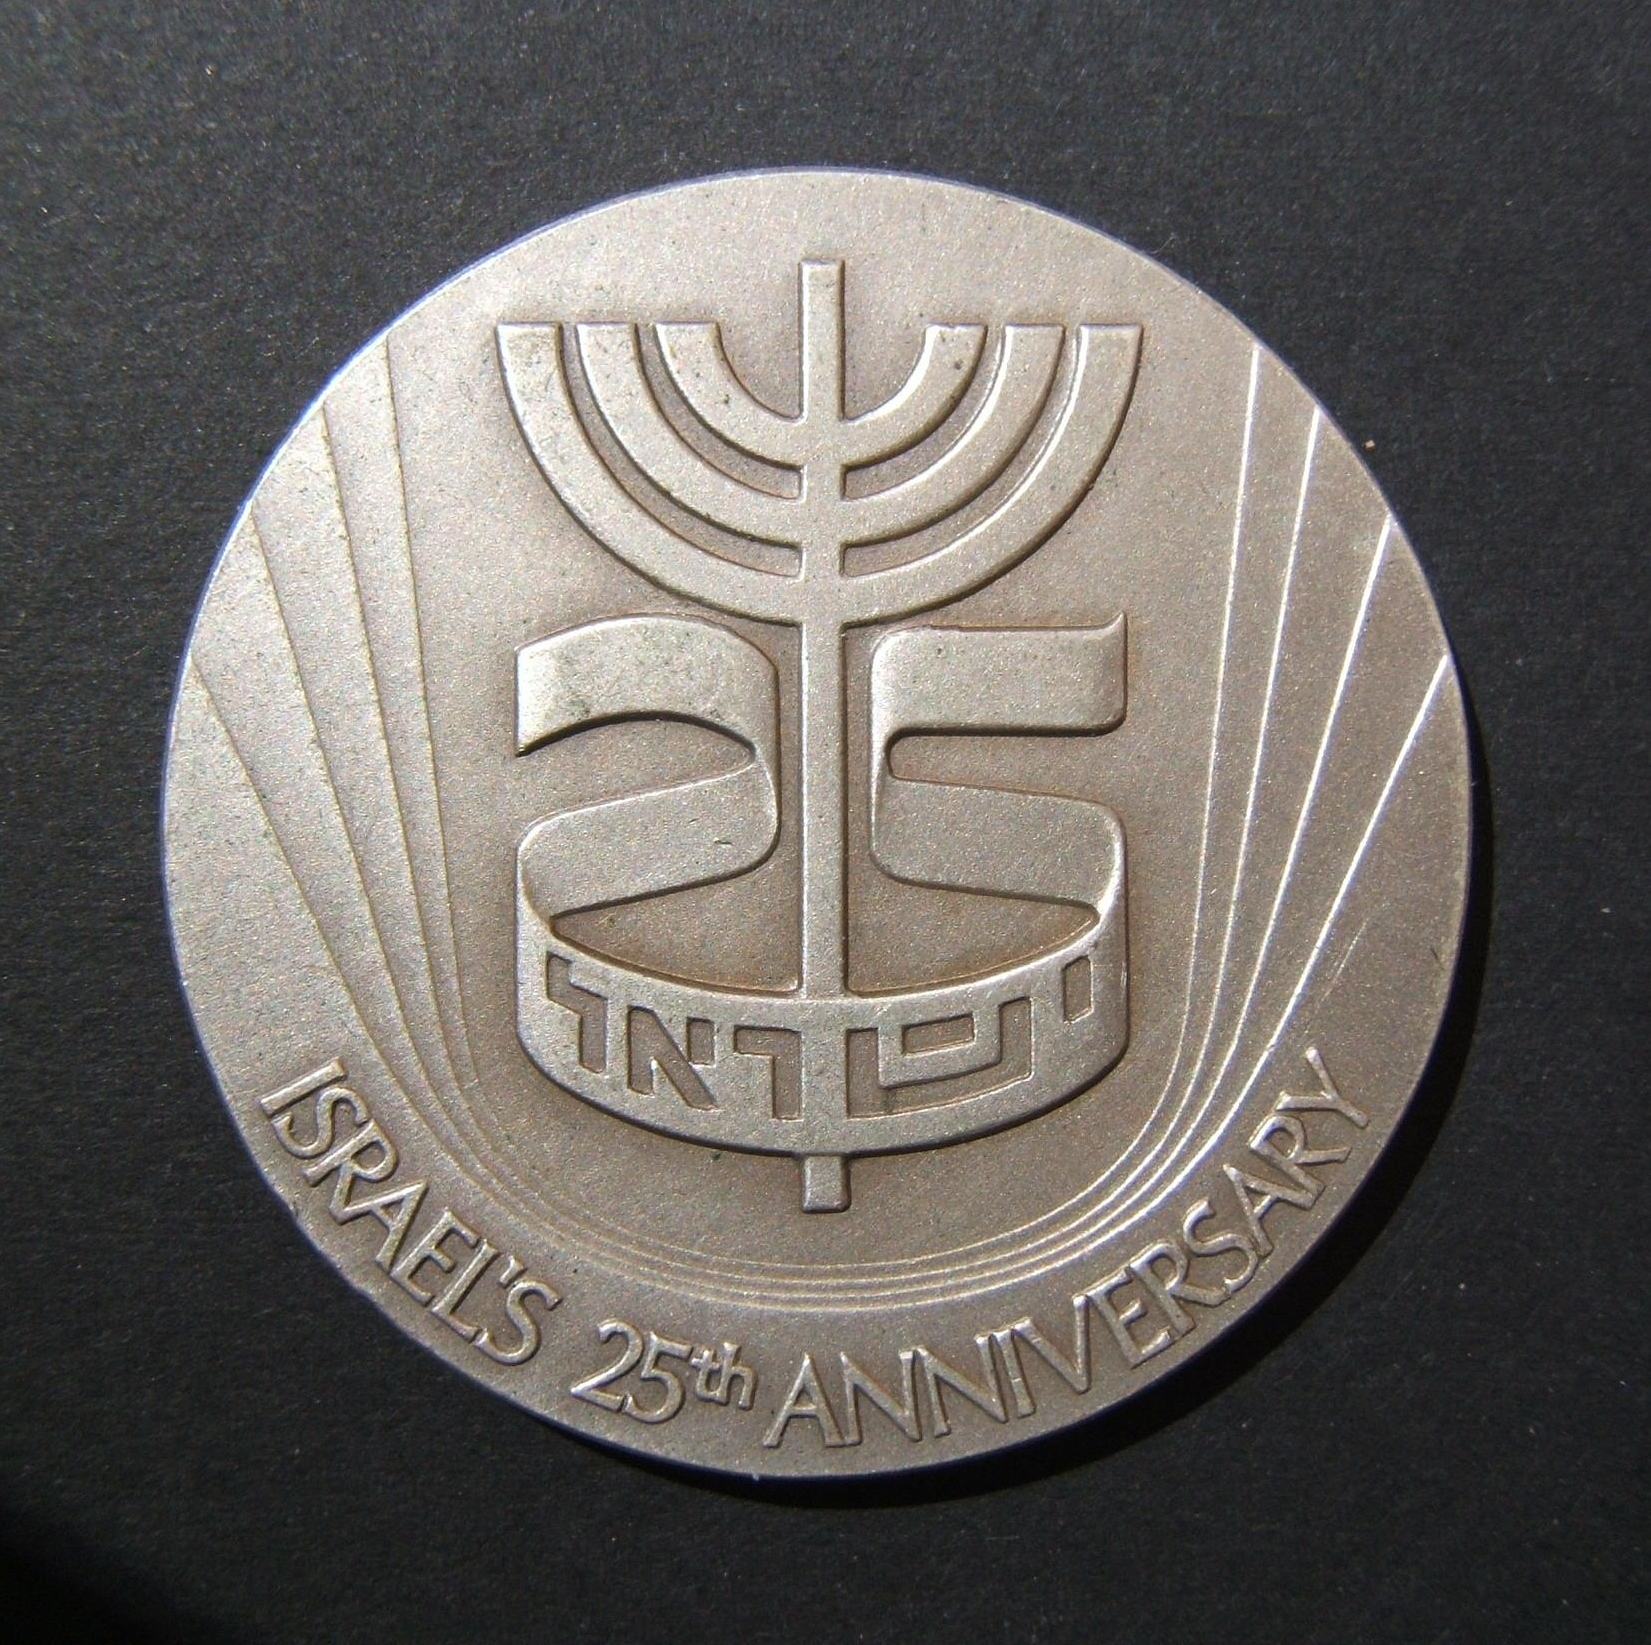 Israel: 25th Anniversary of Independence / 12 Zodiac symbols, 1973, numbered (11,427 out of 40,938) silver State Medal; by Gidon Keich and Moshe Nov; size: 45mm; weight: 47g. In UN